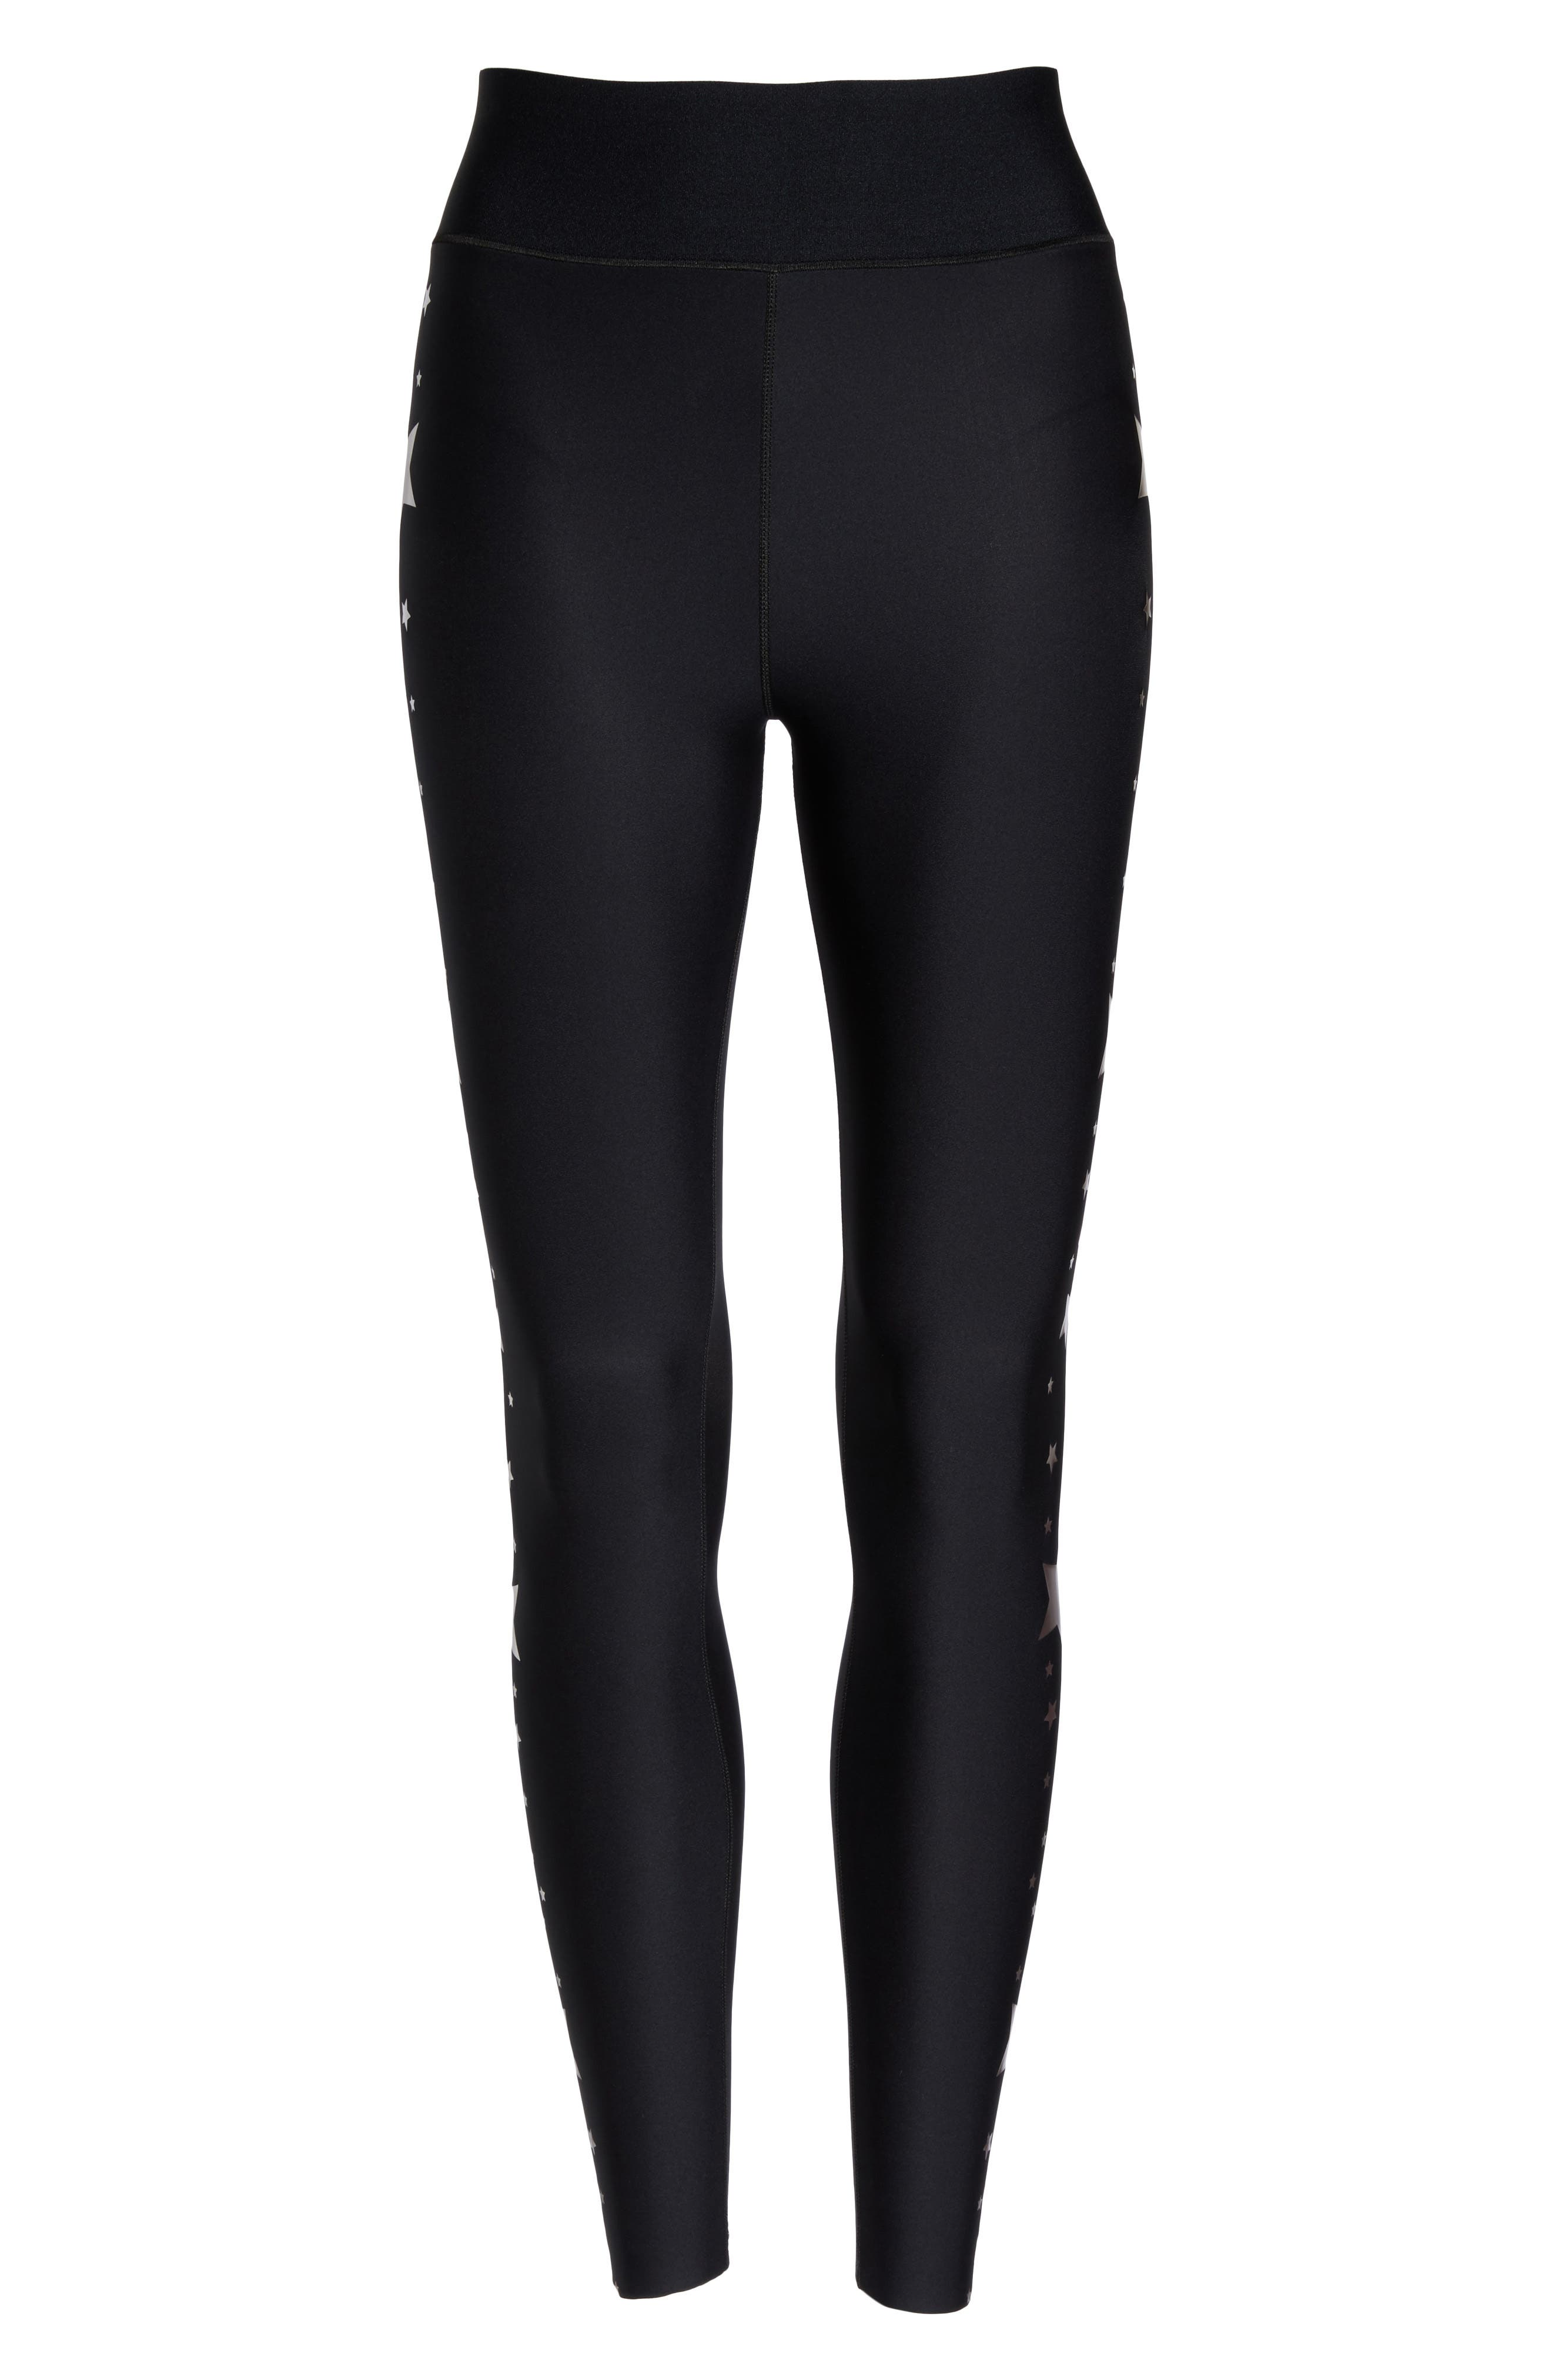 Lux Stellar High Waist Leggings,                             Alternate thumbnail 7, color,                             001